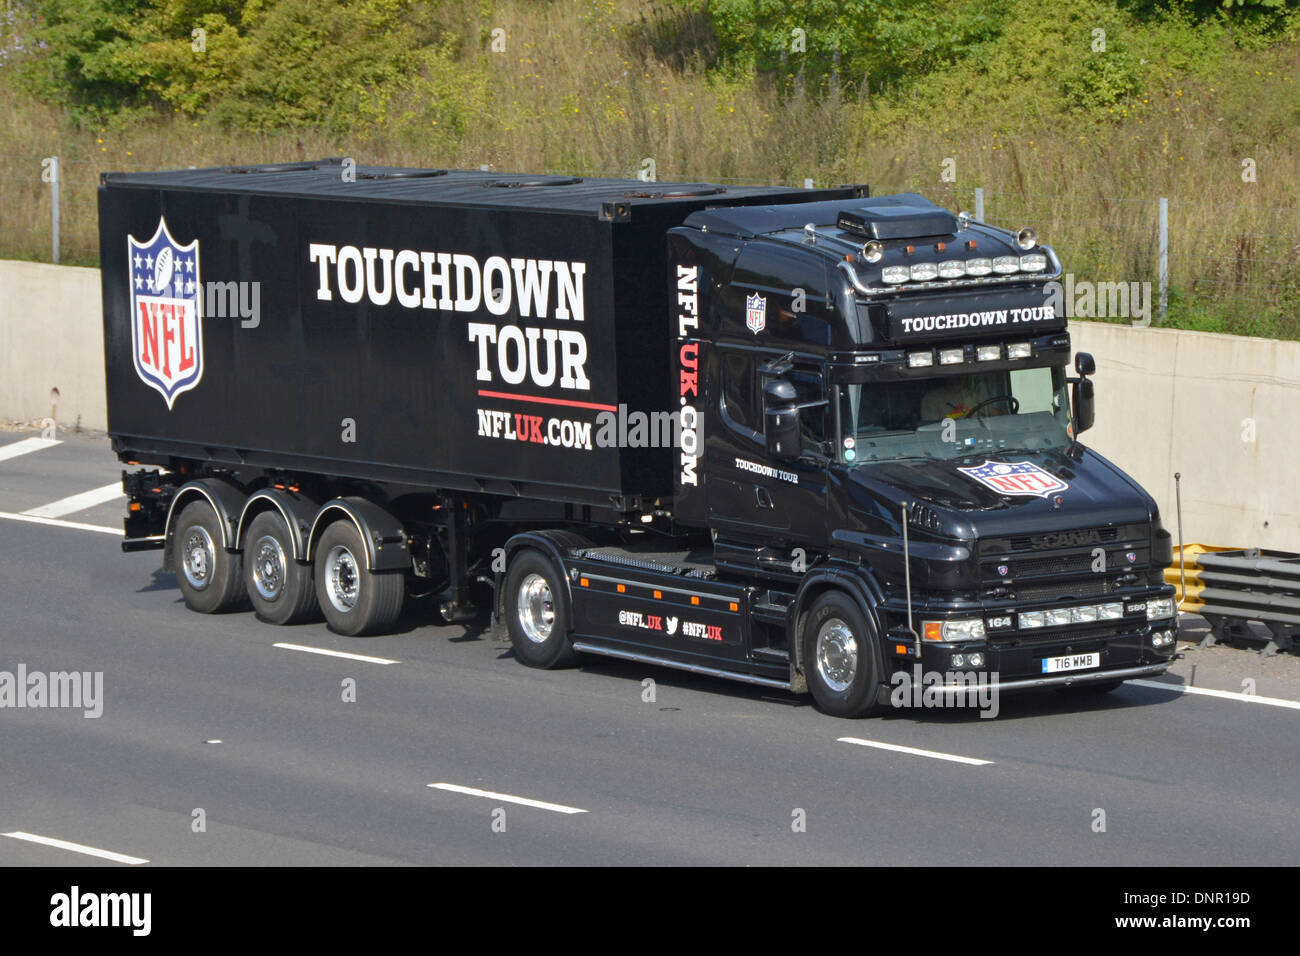 Scania truck and trailer promoting the NFL Touchdown Tour driving along the M25 motorway - Stock Image